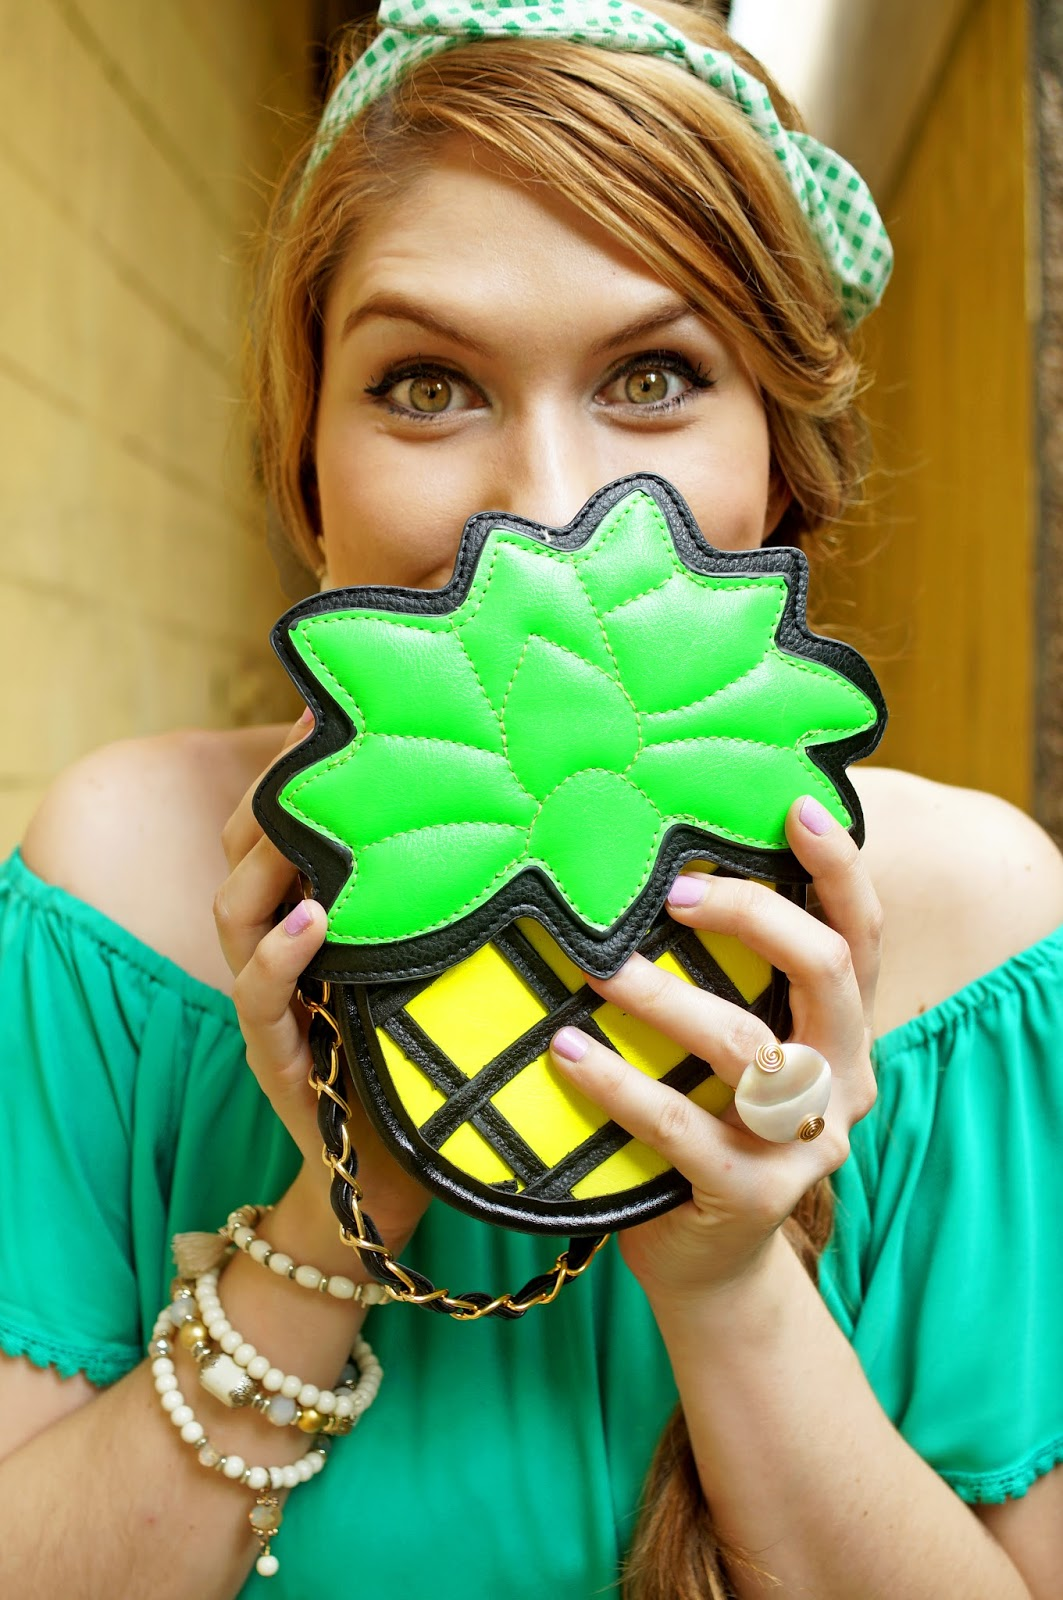 Adorable Pineapple Bag for Summer!